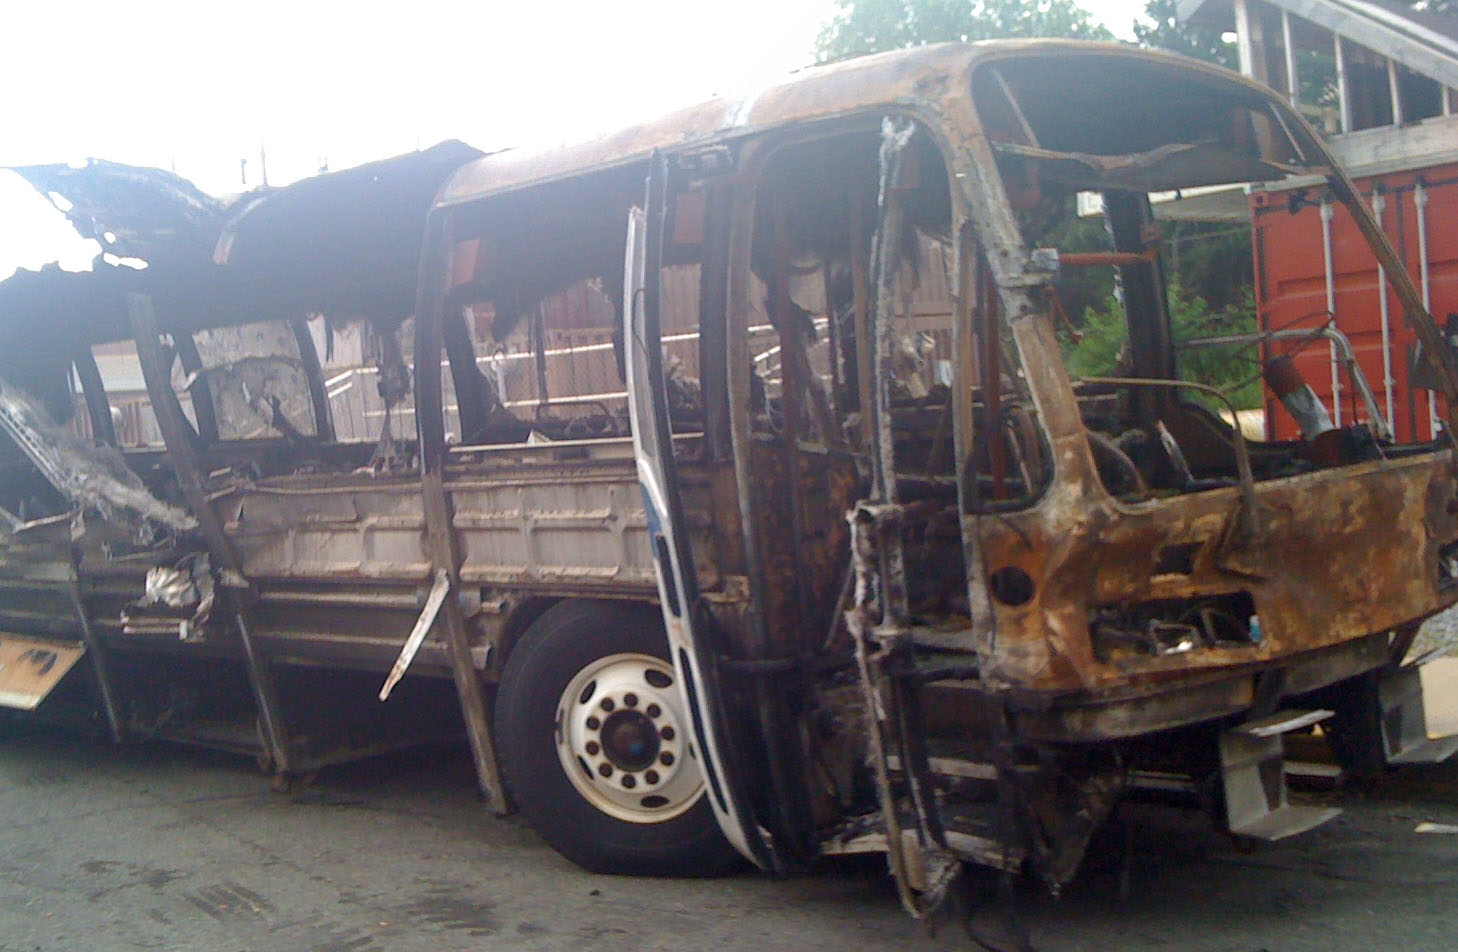 A simulated burning bus.